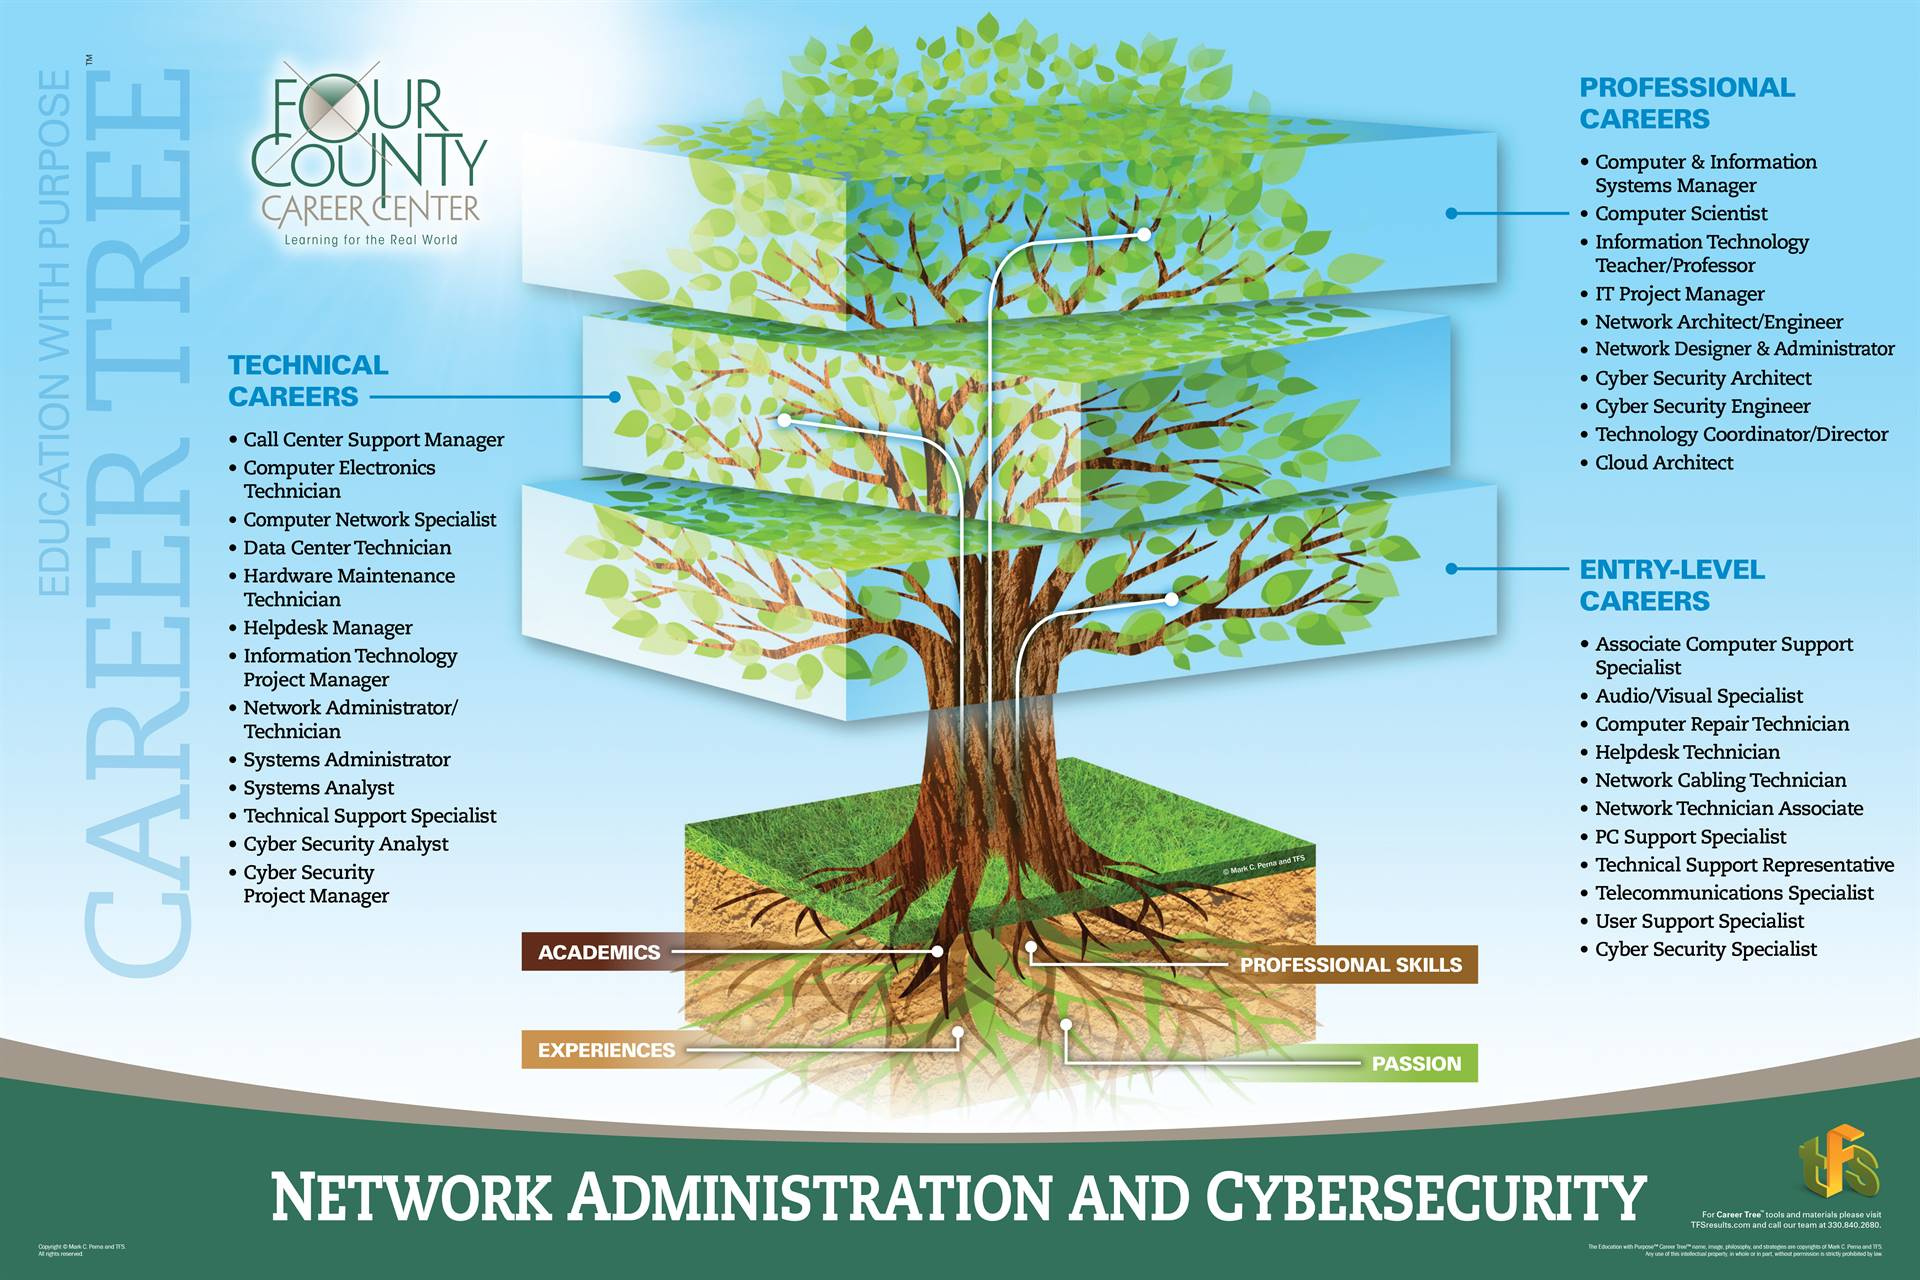 Network Administration & Cybersecurity